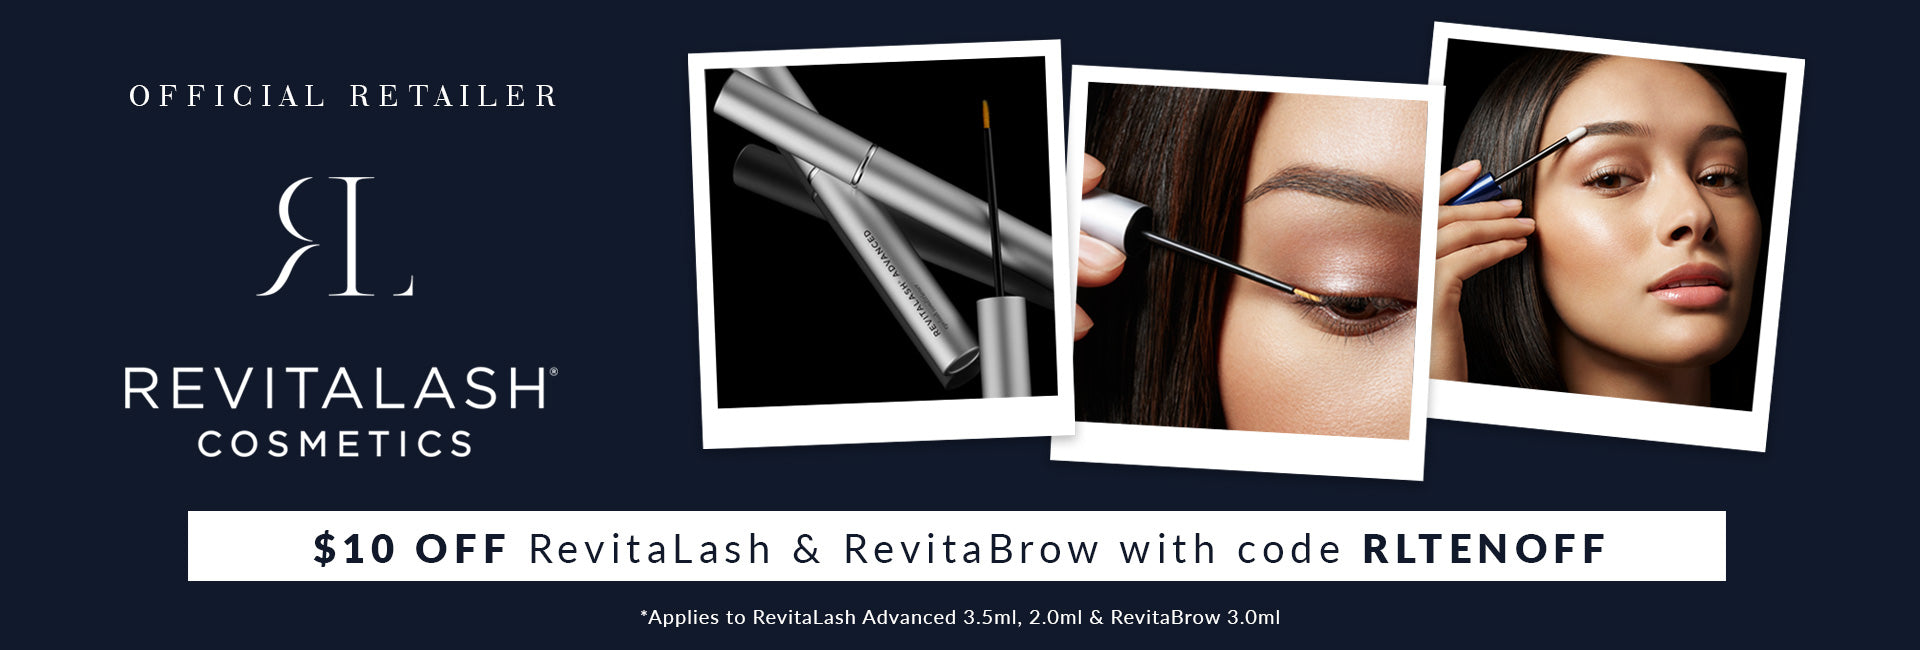 $10 OFF your purchase of RevitaLash Eyelash Conditioner (3.5ml/2.0ml) or RevitaBrow 3.0ml and FREE DELIVERY nationwide with code: RLTENOFF